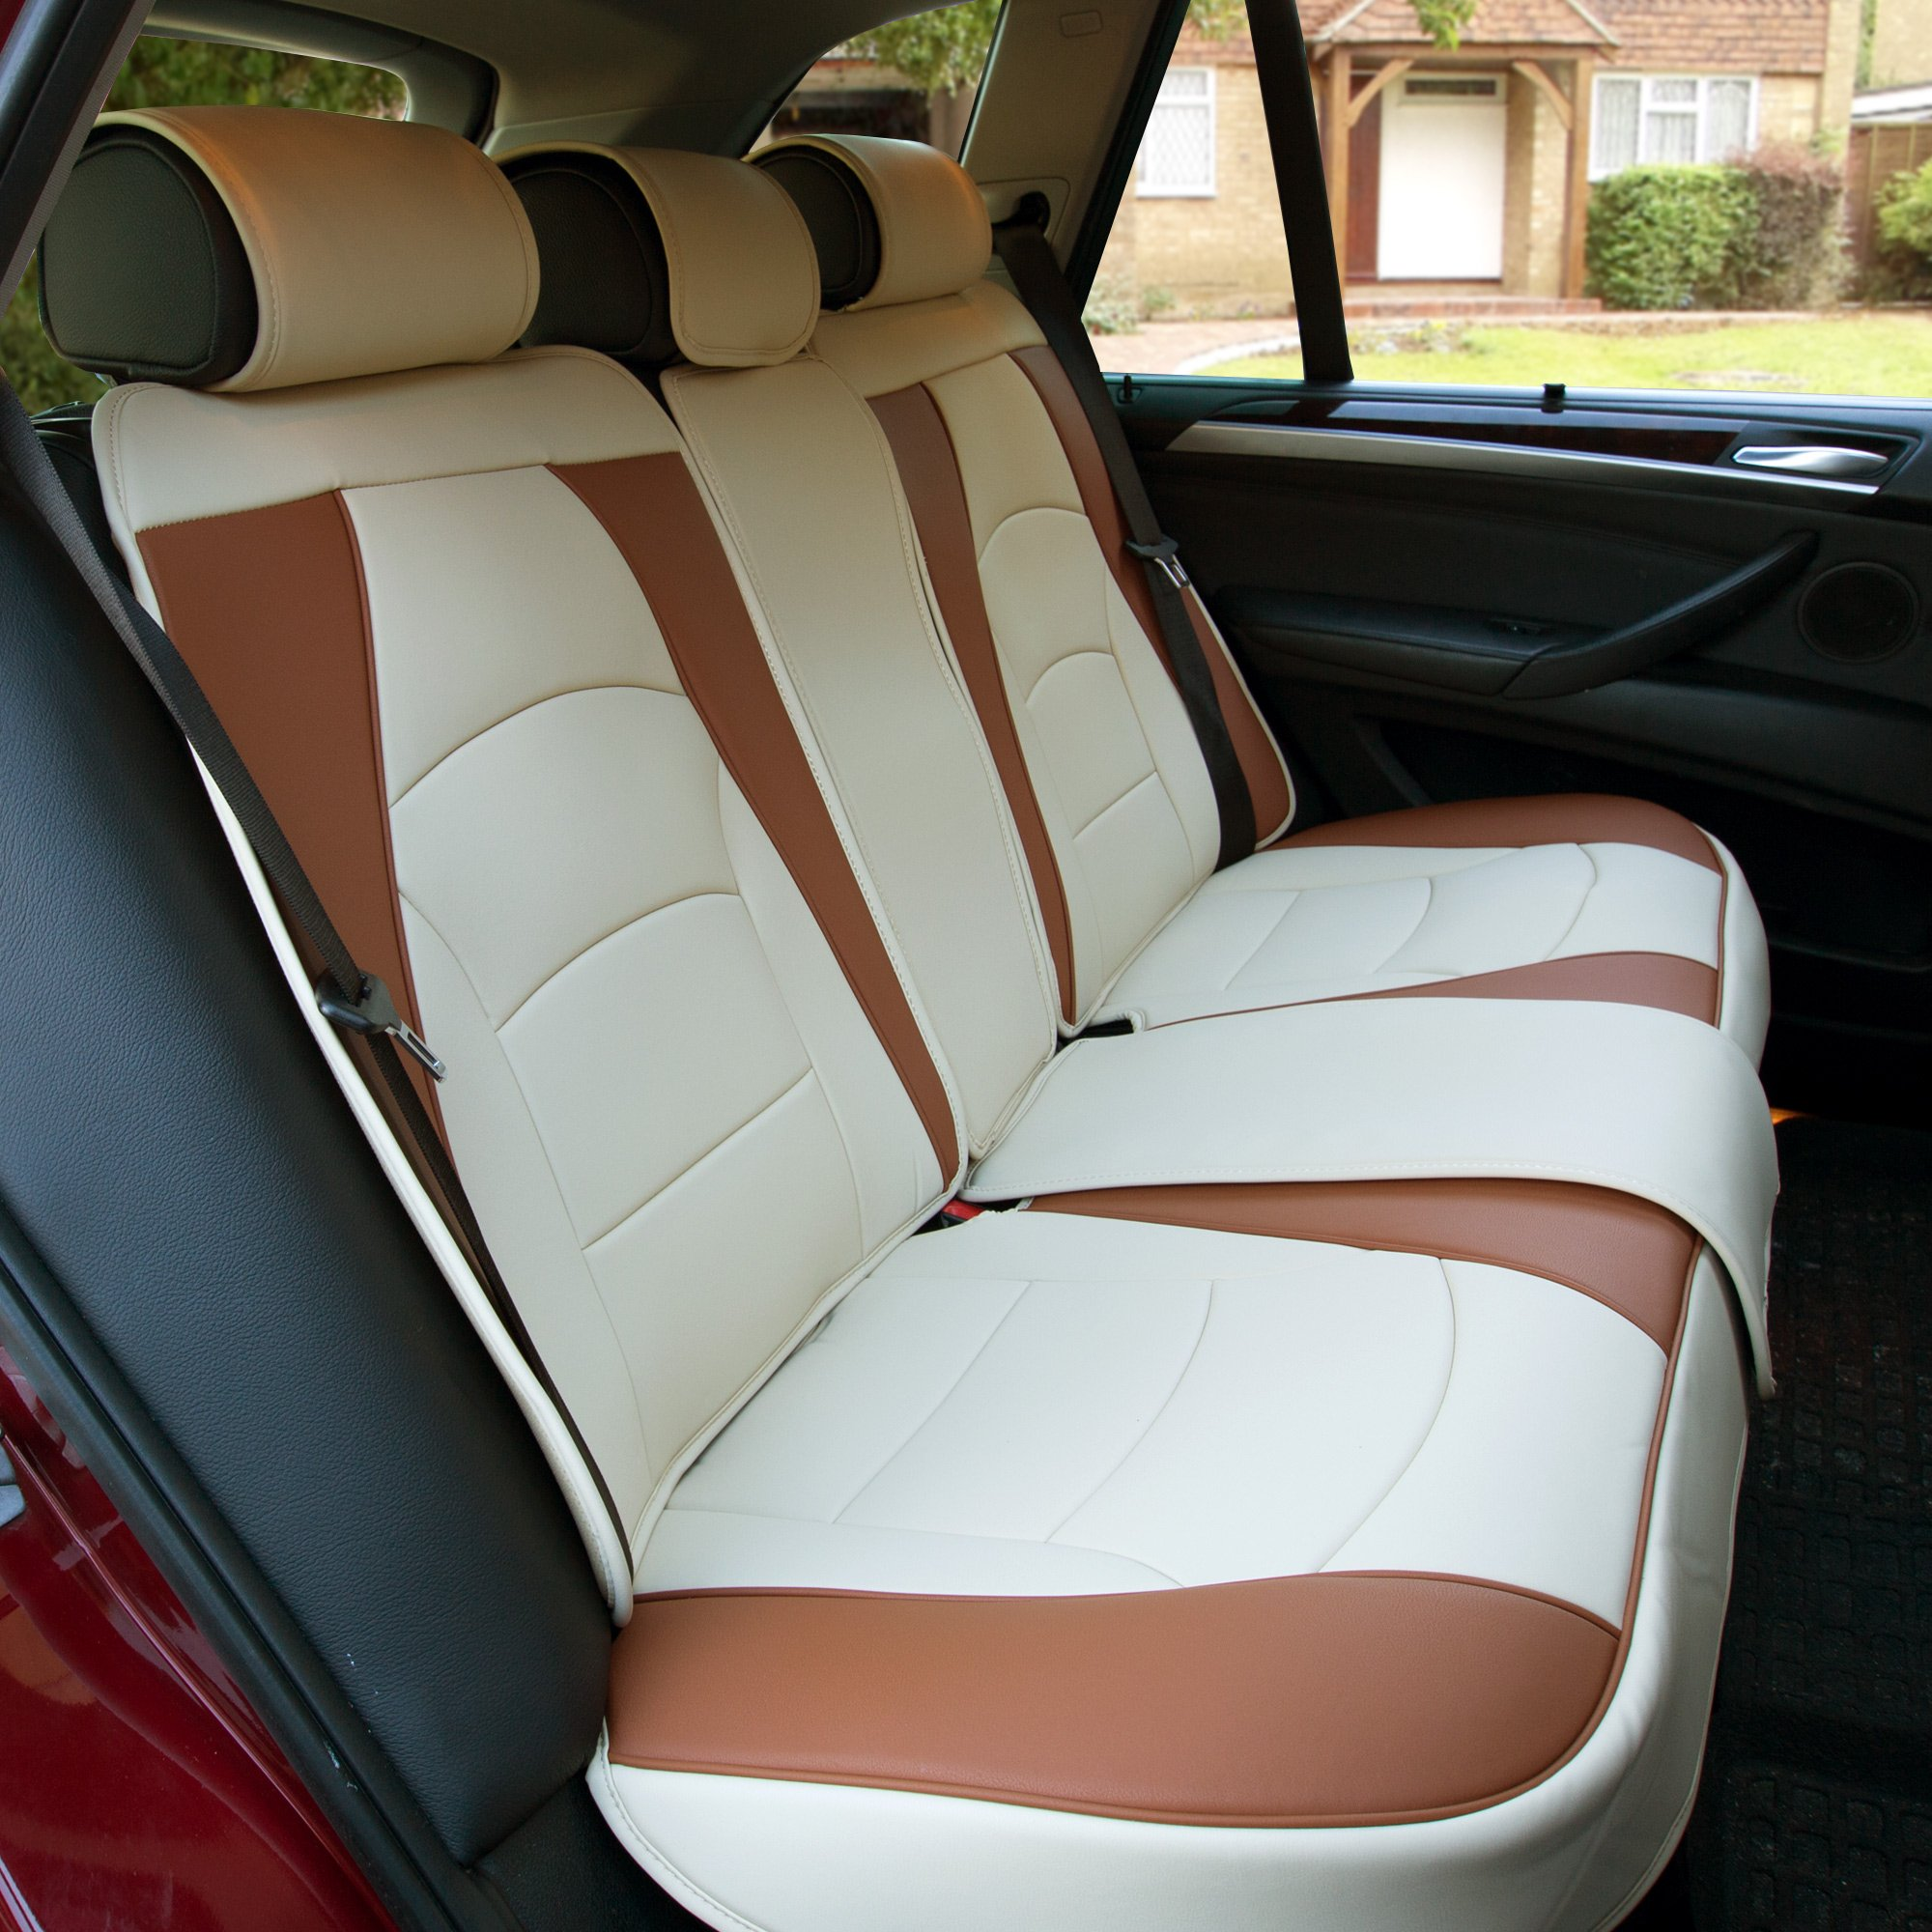 FH Group PU205013BEIGEBROWN Bench PU205BEIGEBROWN013 Ultra Comfort Leatherette Rear Seat Cushions Beige and Brown